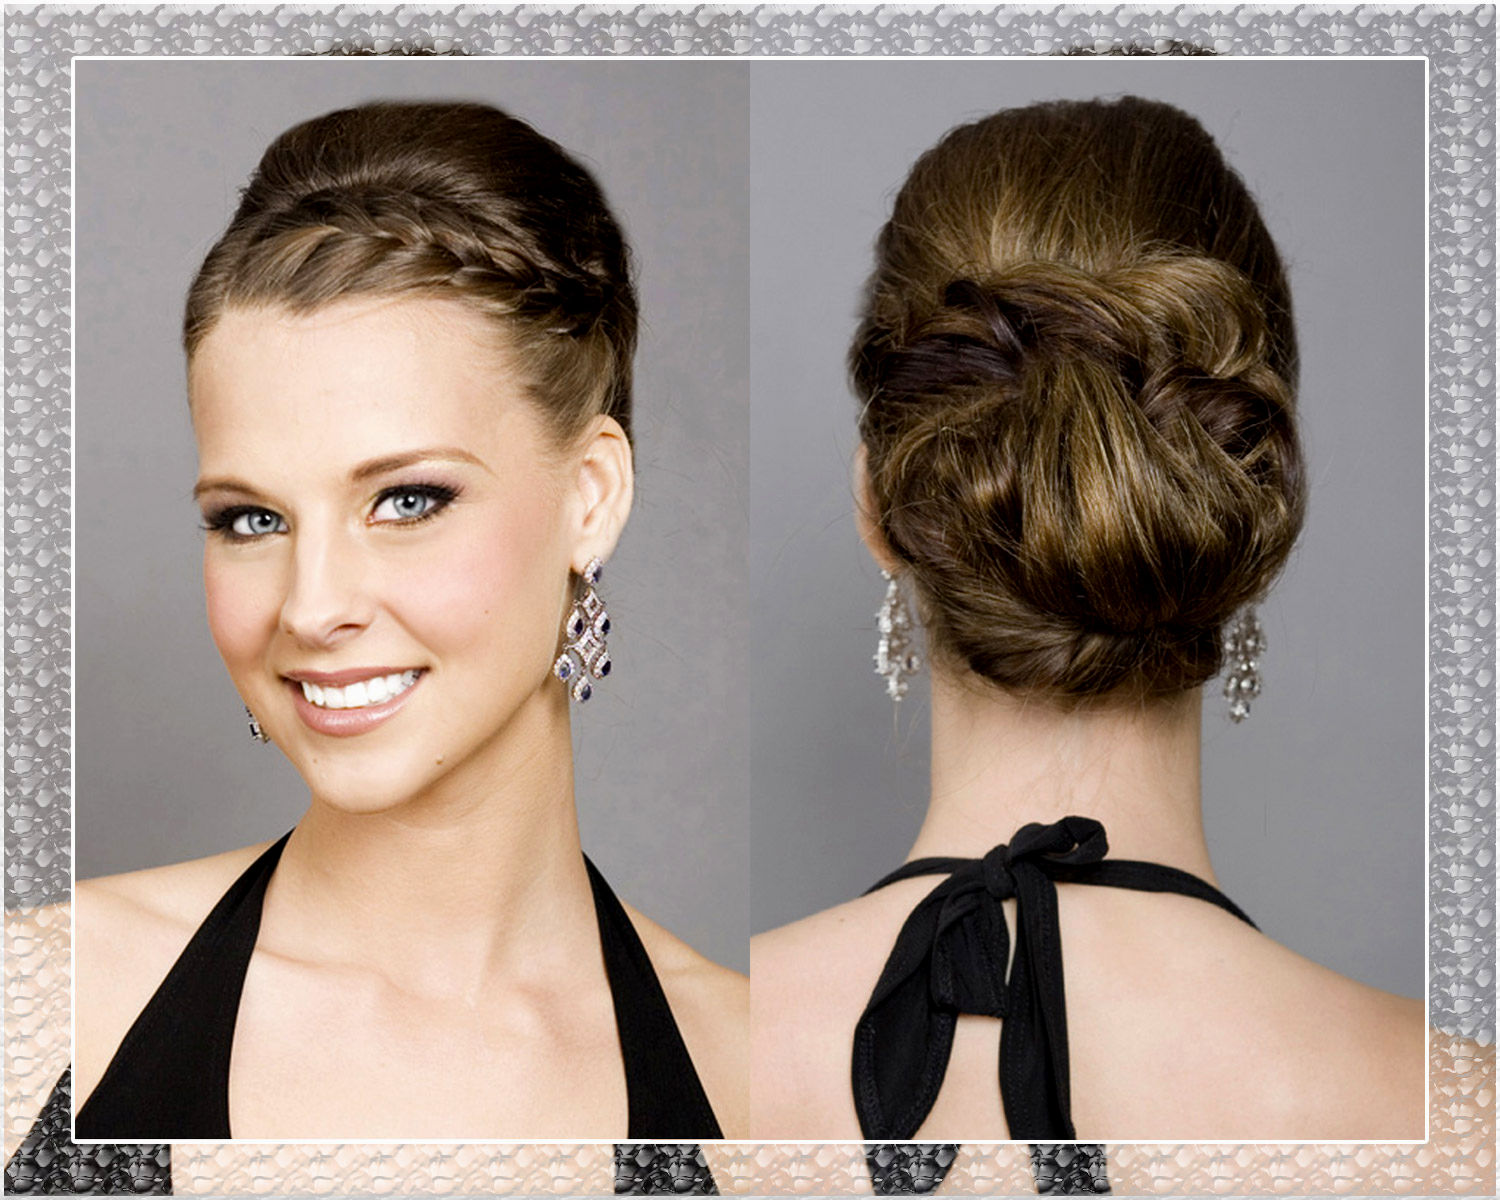 50 Dreamy Wedding Hairstyles For Long Hair: 50s Hairstyles: 11 Vintage Hairstyles To Look Special